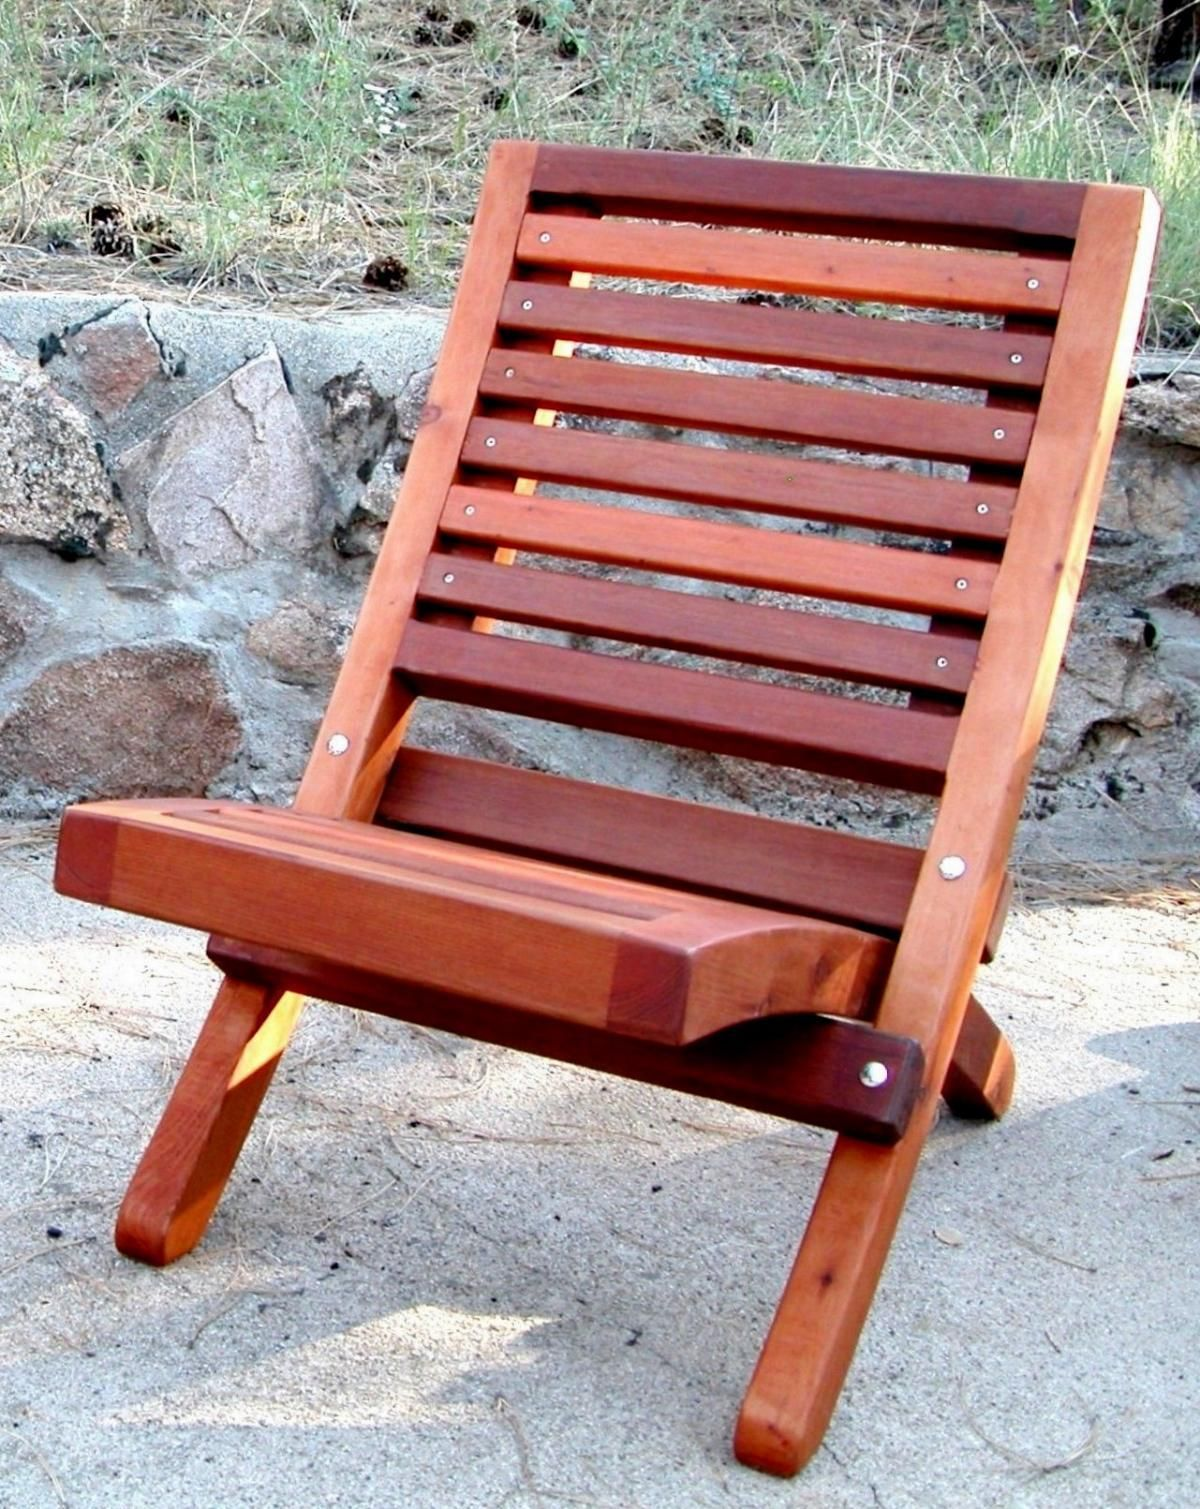 Price reduced sturdy wooden vintage rocking chair made in yugoslavia - Portable Beach Chair Options Old Growth Redwood Transparent Premium Sealant